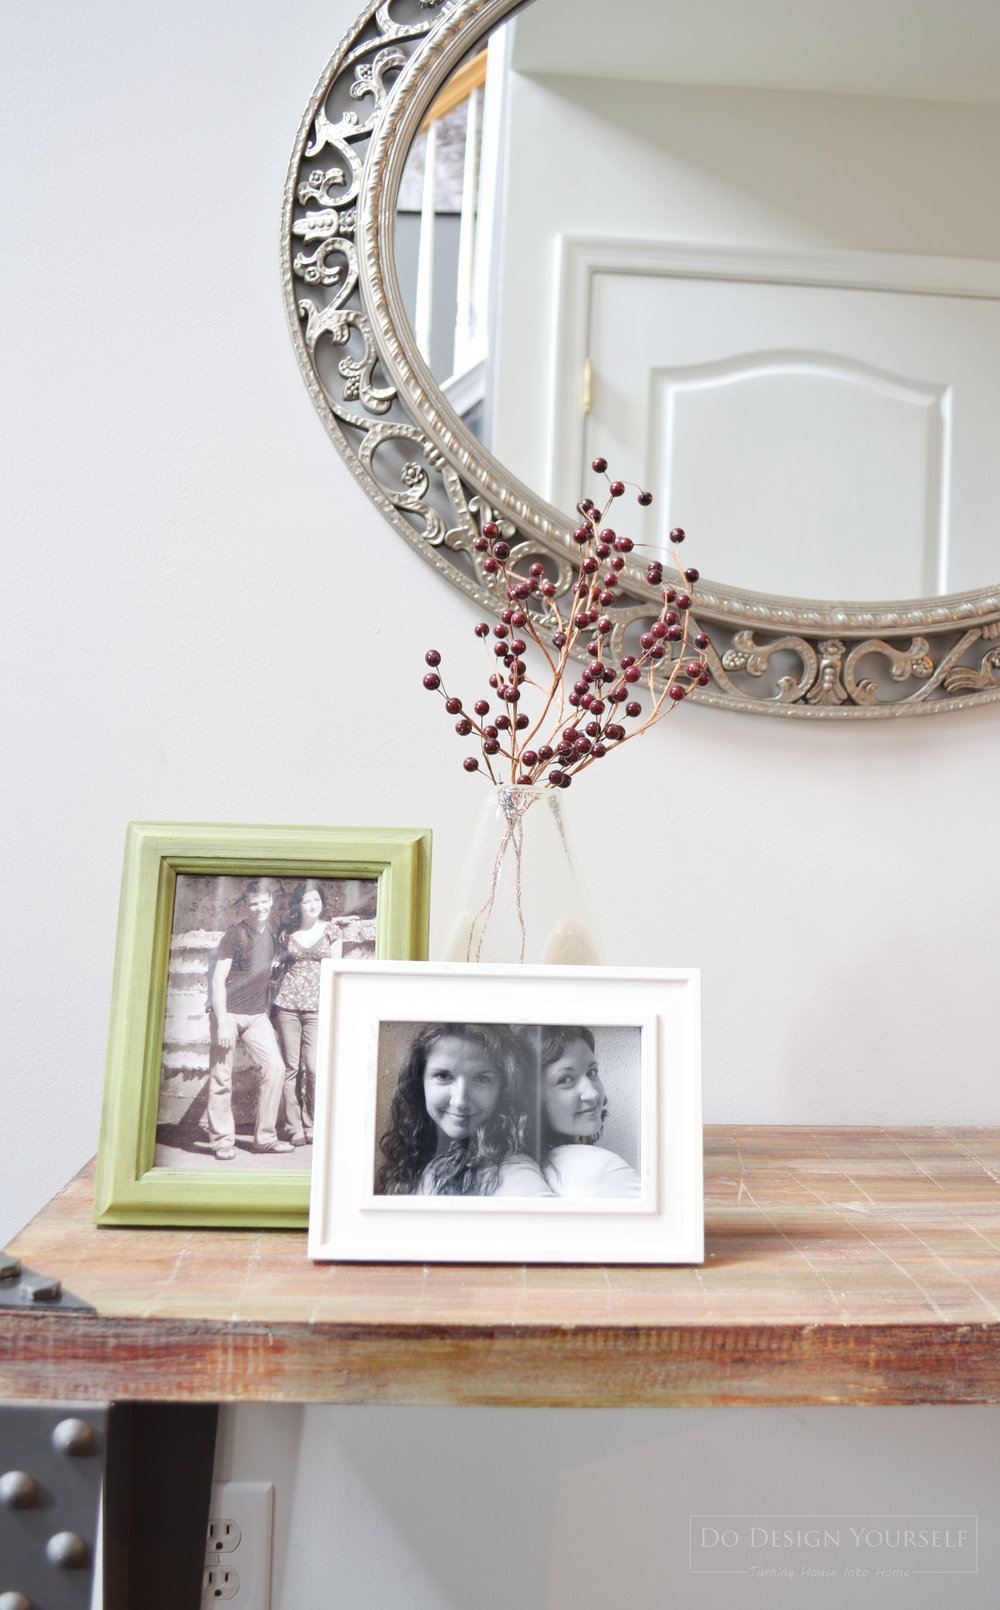 Decorate with the personal photos arranging them into vignettes in odd numbers